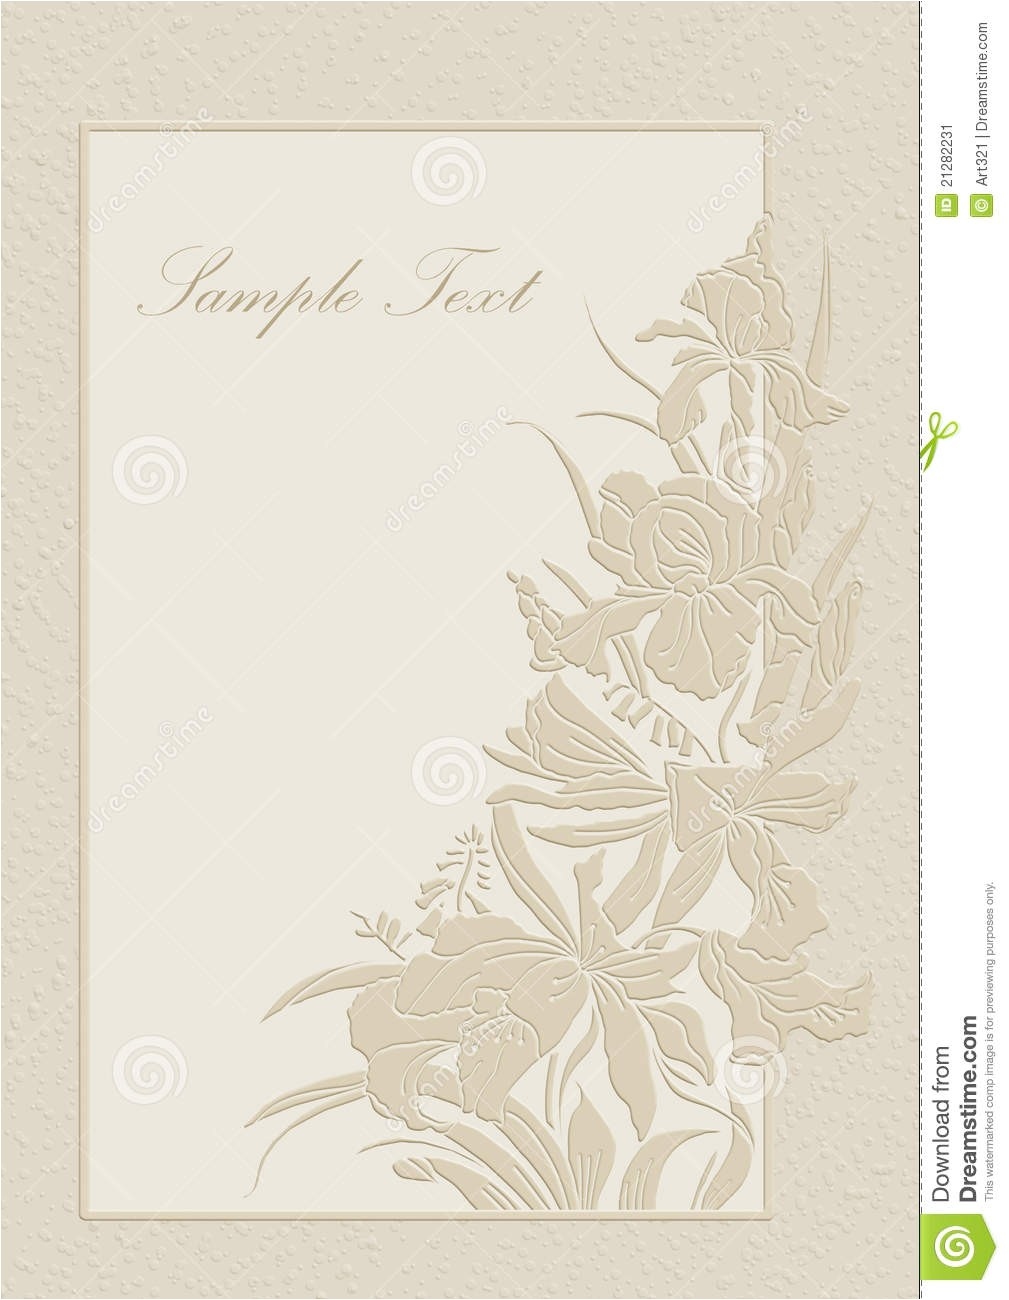 stock image wedding invitation frame orchids lilies image21282231